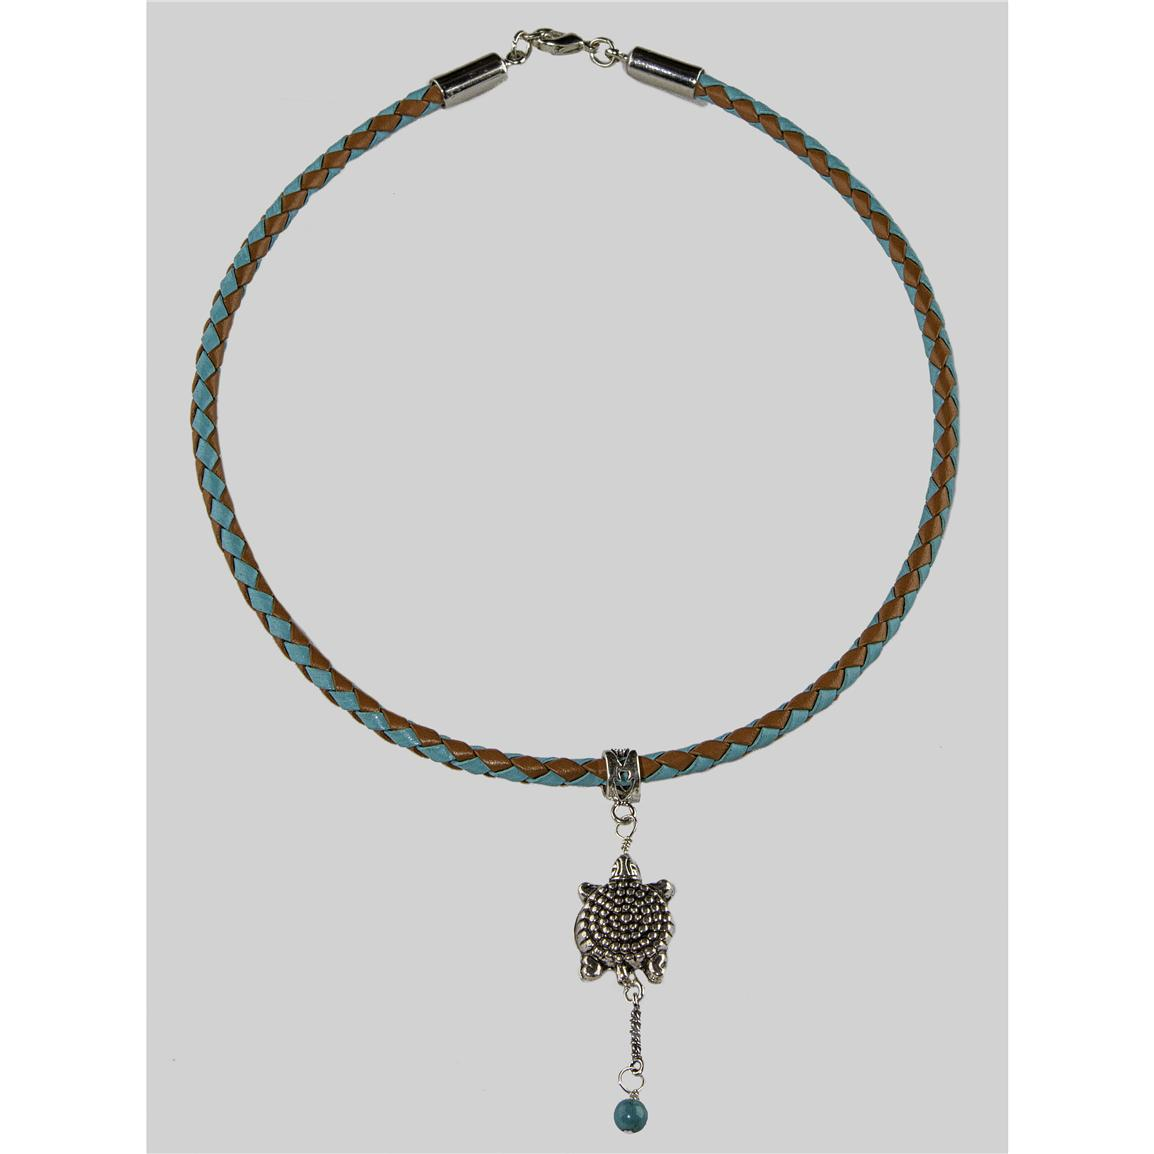 Laura Ingalls Designs™ Turtle on Turquoise and Black Braided Necklace